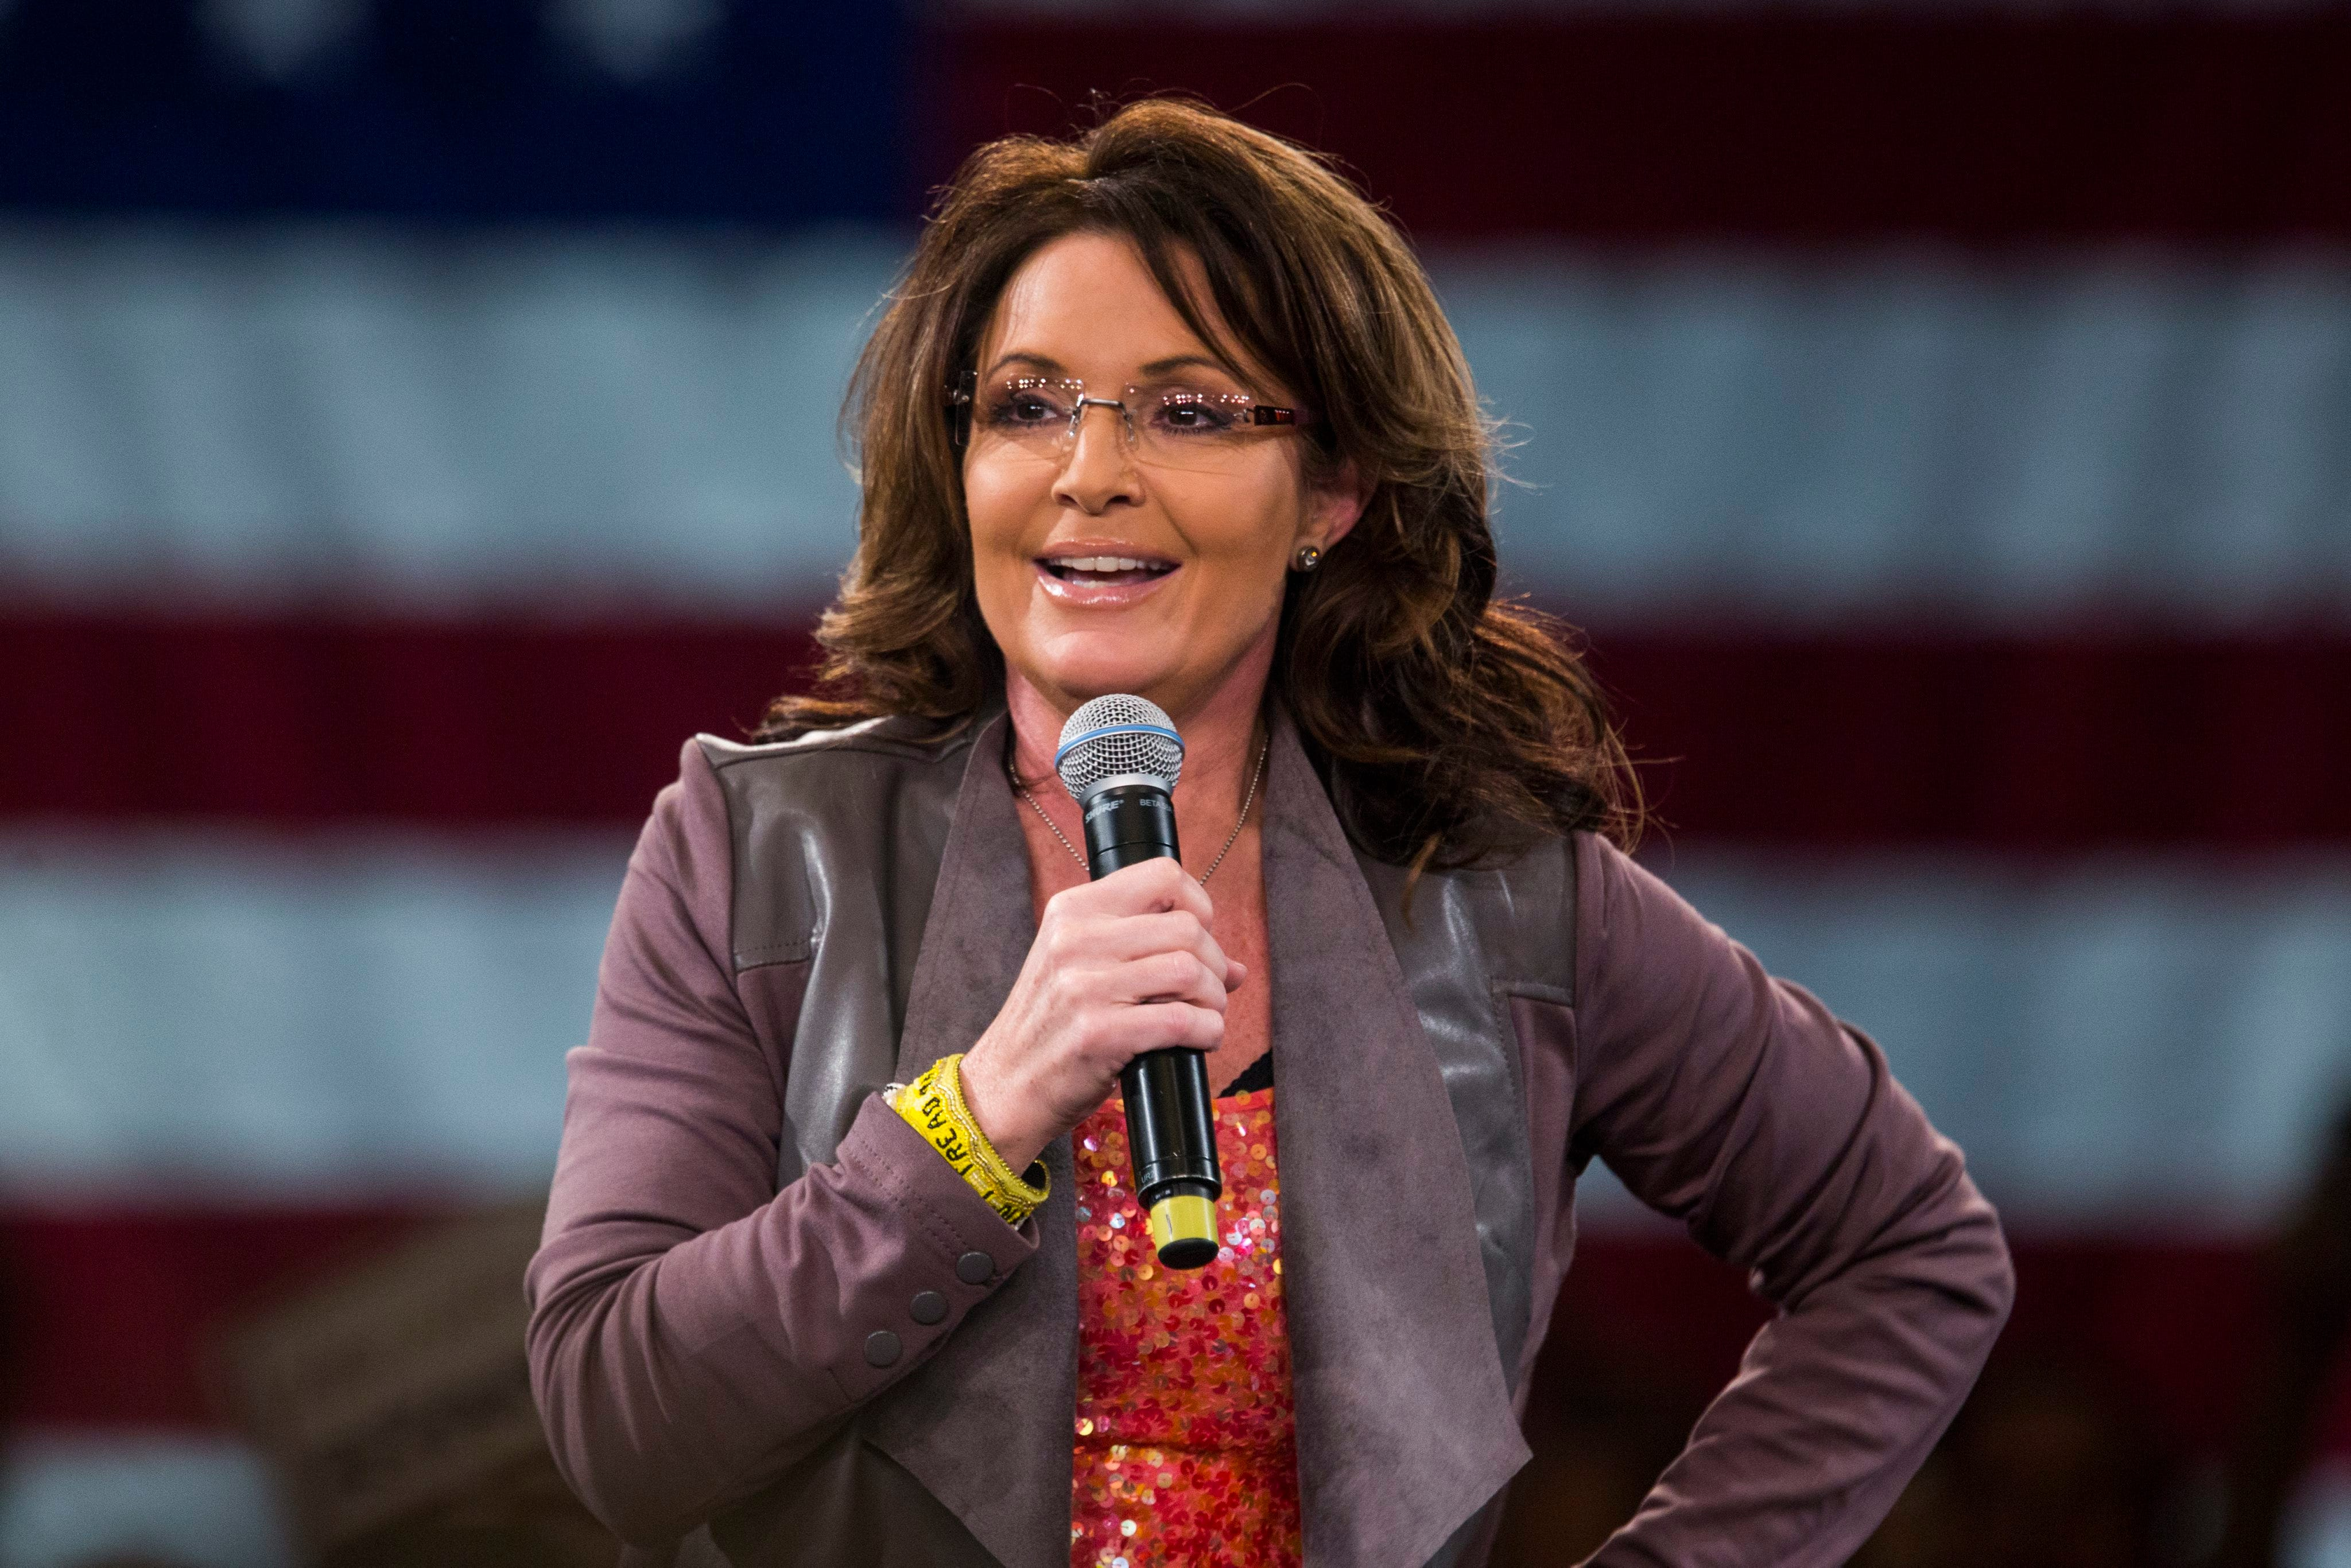 Sarah Palin Just Made A MASSIVE Announcement About 2016!